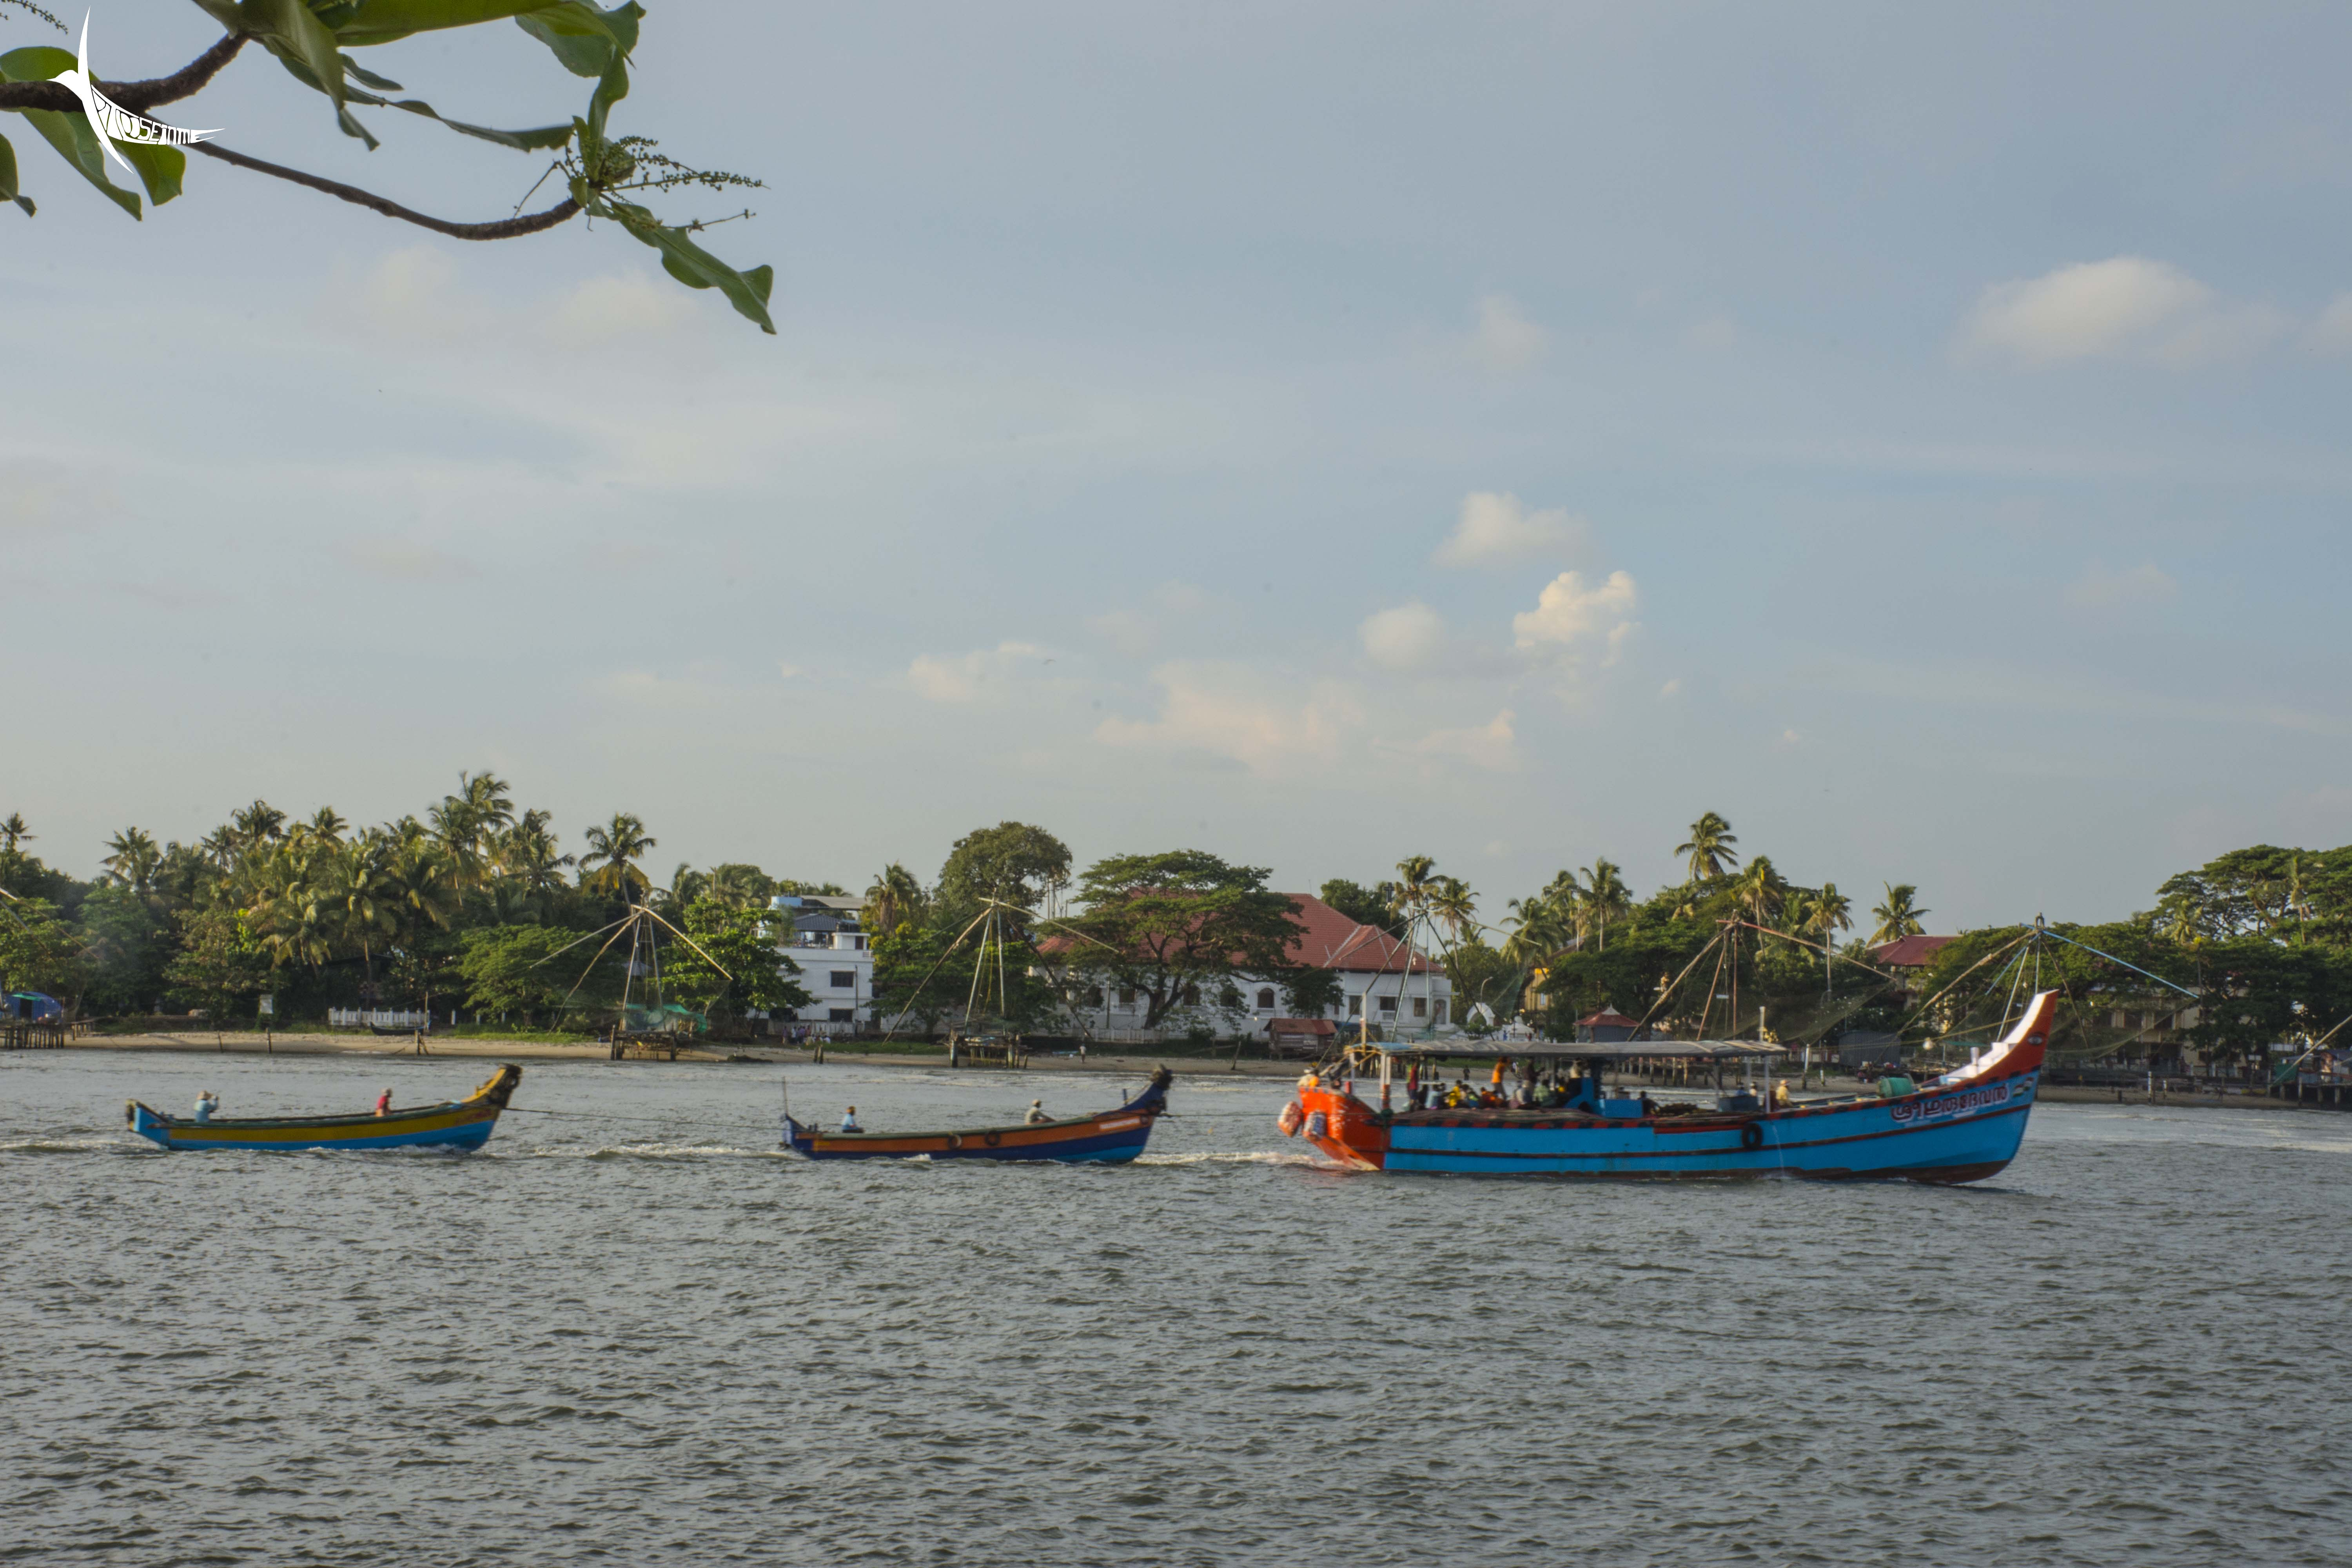 Trail of boats on the backwater